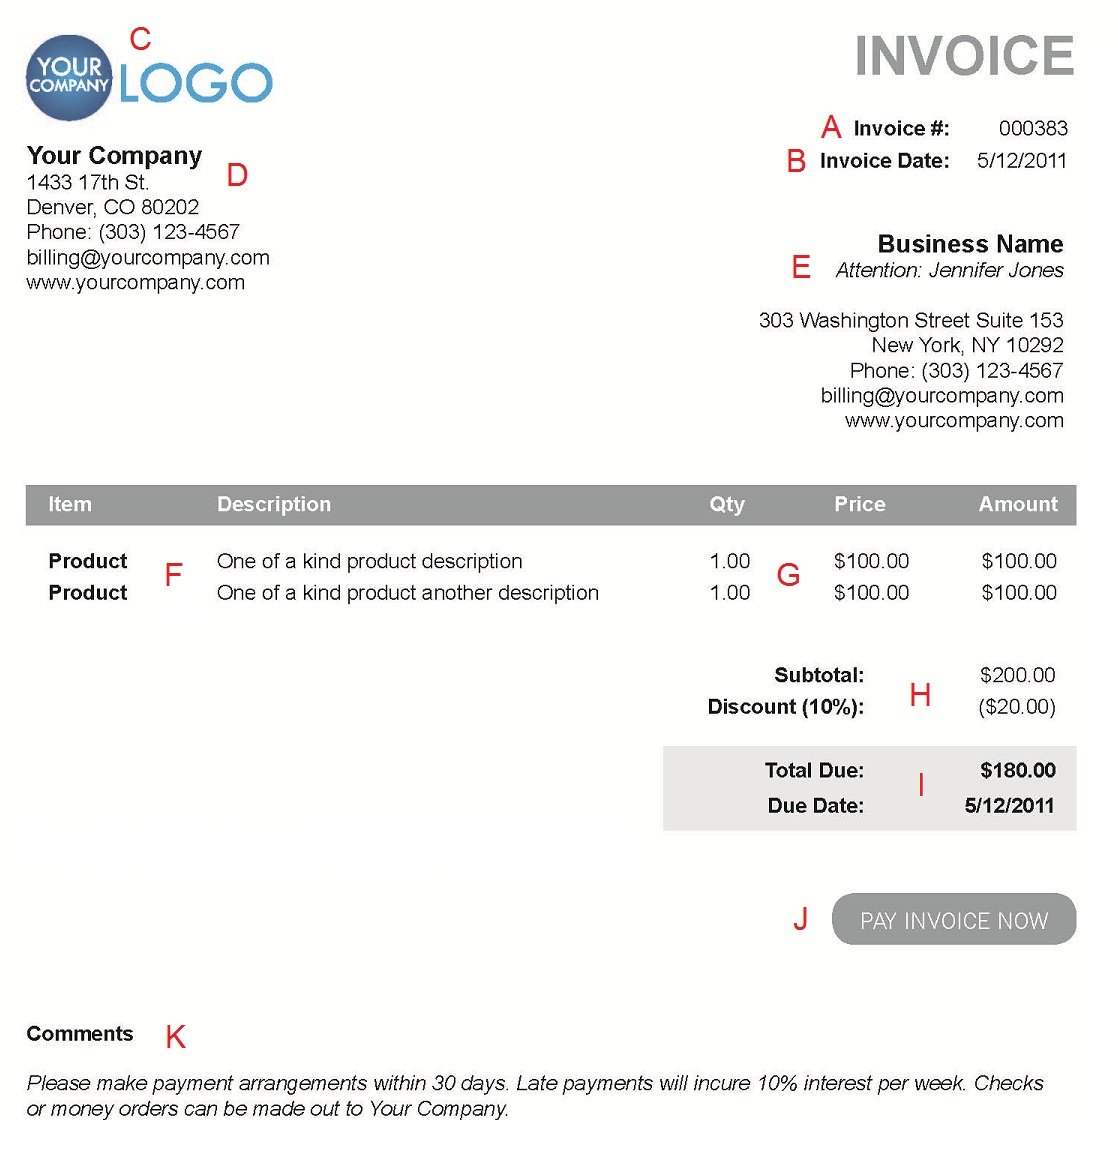 Pigbrotherus  Winning The  Different Sections Of An Electronic Payment Invoice With Inspiring A  With Alluring Online Tax Receipt Also Macaroni And Cheese Receipt In Addition Confirm The Receipt Of And Best Receipts Scanner As Well As Template Receipts Additionally Temporary Receipt Template From Paysimplecom With Pigbrotherus  Inspiring The  Different Sections Of An Electronic Payment Invoice With Alluring A  And Winning Online Tax Receipt Also Macaroni And Cheese Receipt In Addition Confirm The Receipt Of From Paysimplecom